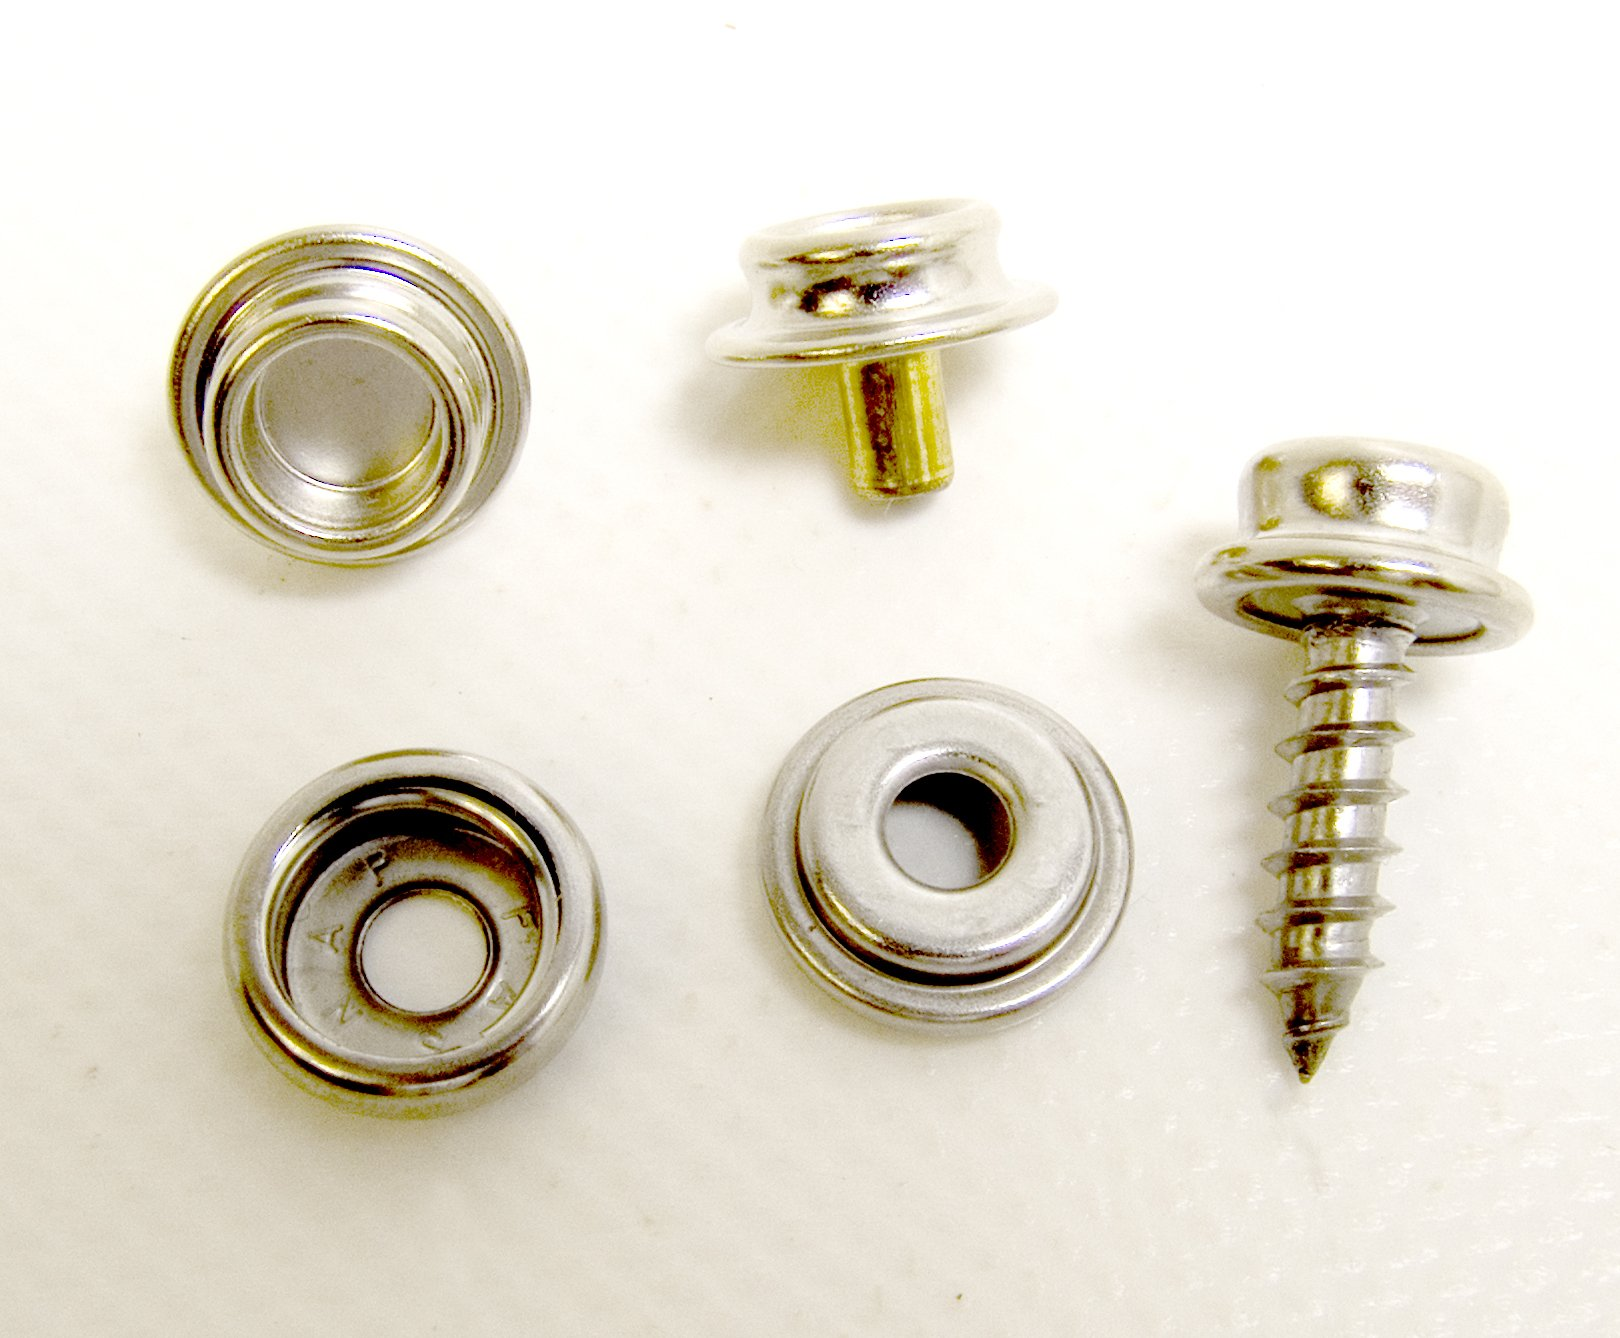 Gypsy Stud / Double Stud ⅜'' Snap Stud w/ ⅝'' Snap Screw Stud 10 Piece Set- Ships from The USA!